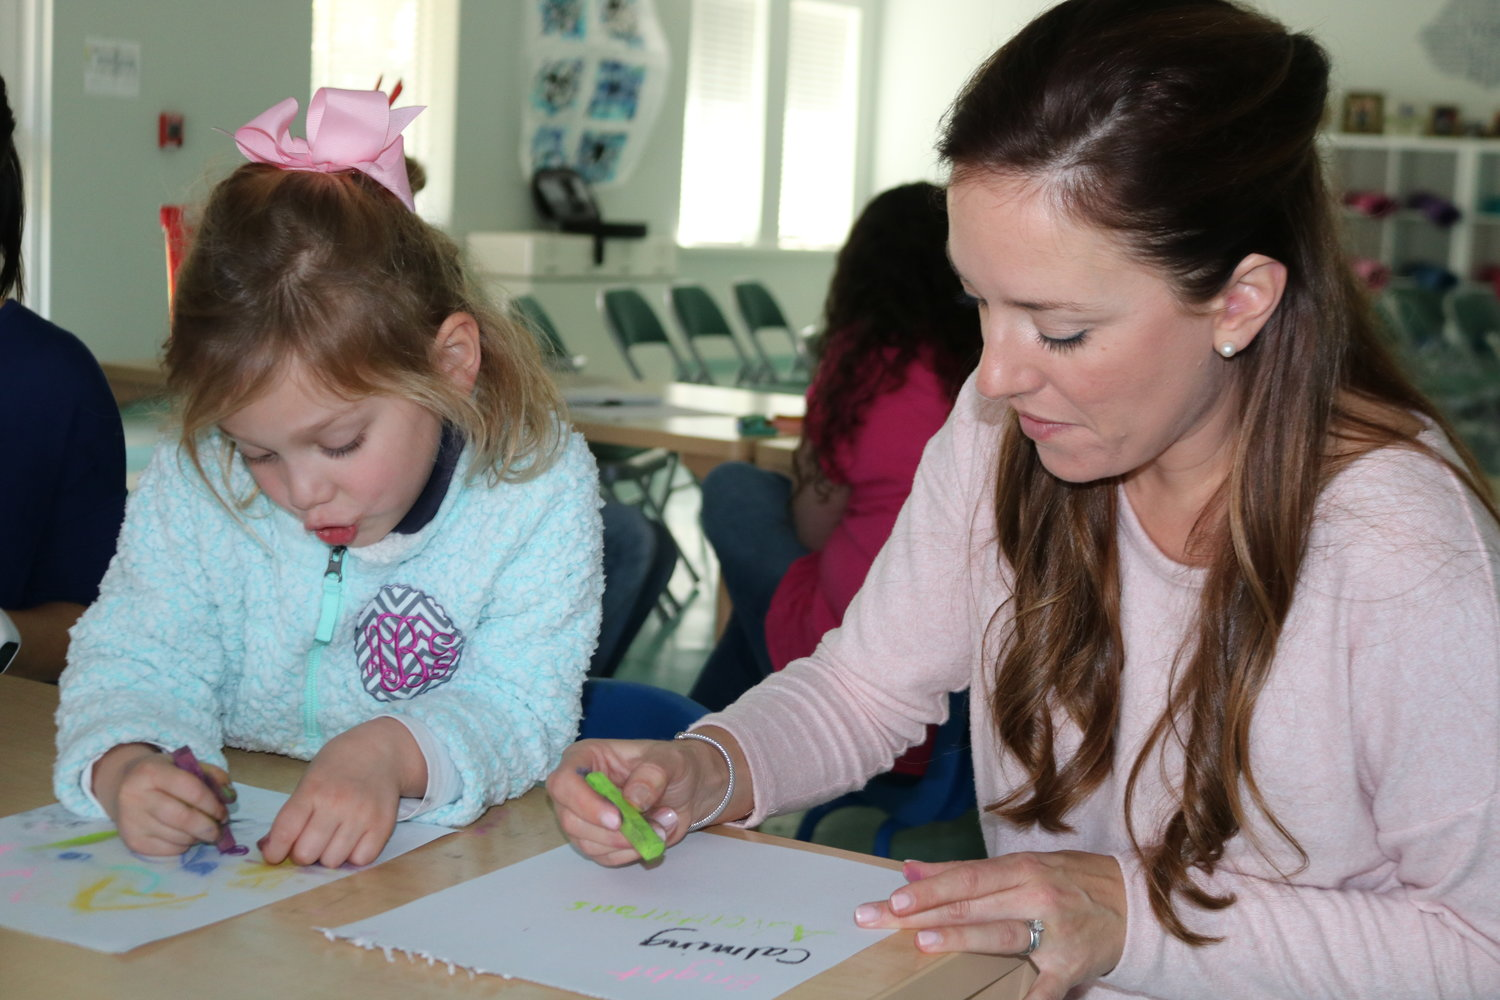 A parent and her child participate in a workshop on the Reggio Emilia Approach at Collage Day School in Ponte Vedra Beach on Feb. 14.